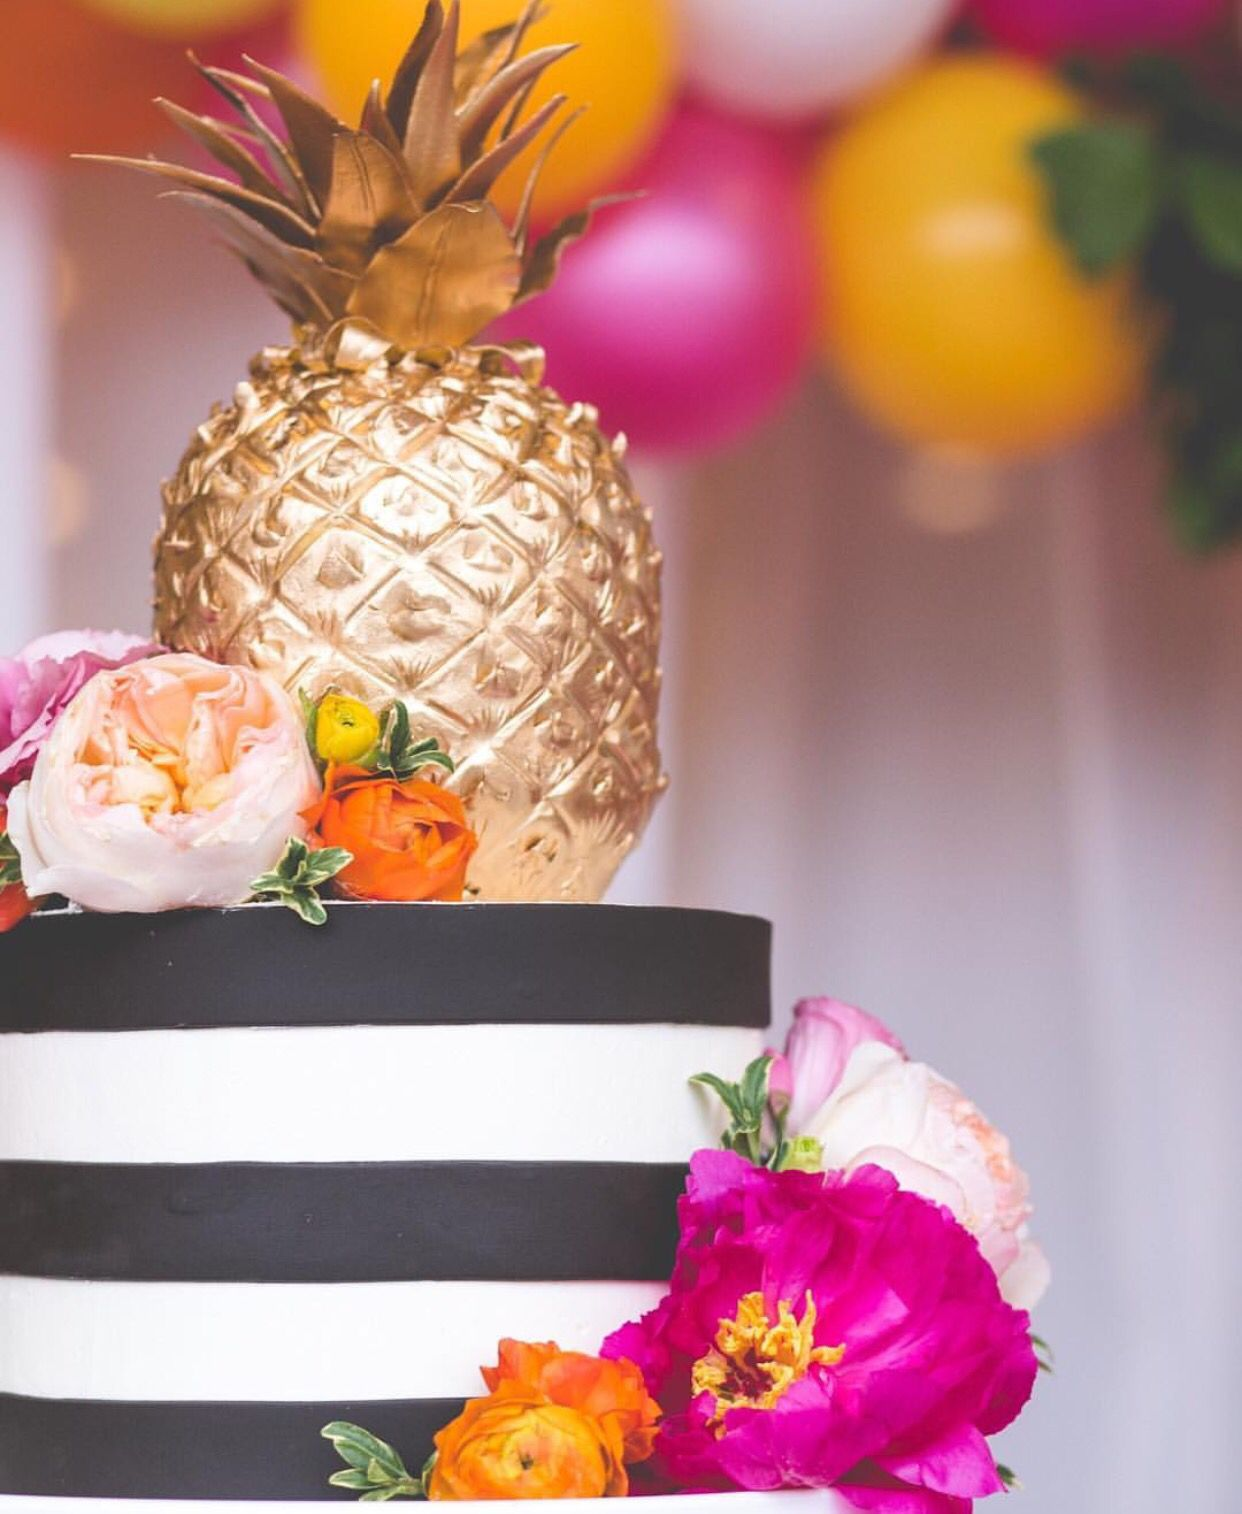 So cute! Love the colors and the touch of pineapple! @weddingwire